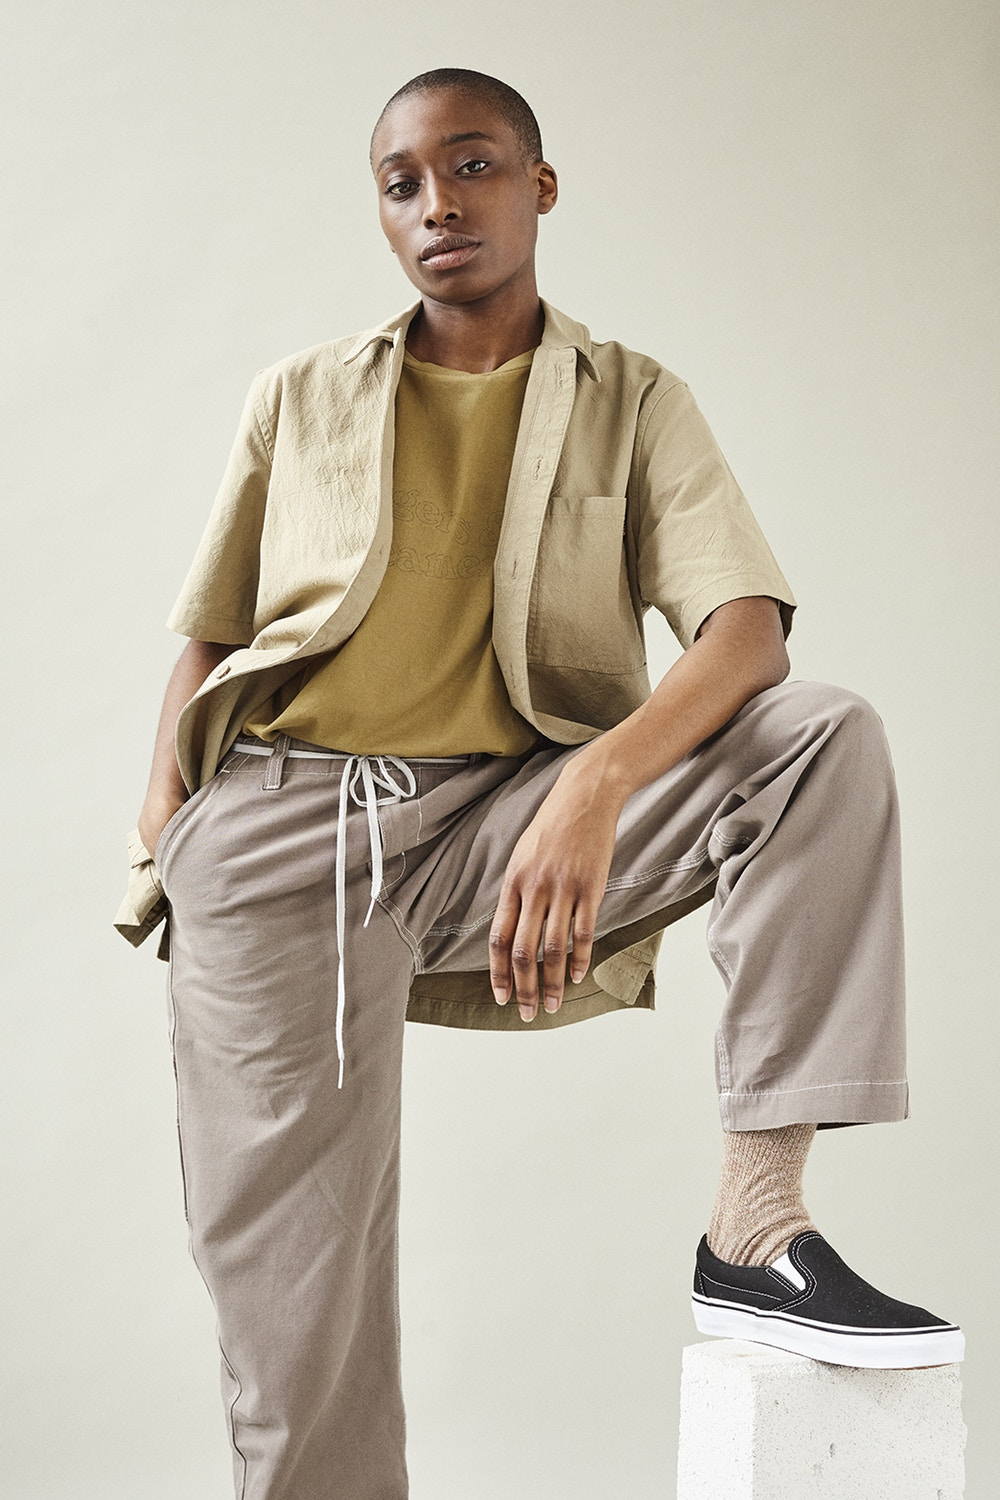 satta-spring-summer-2018-lookbook-1.jpg